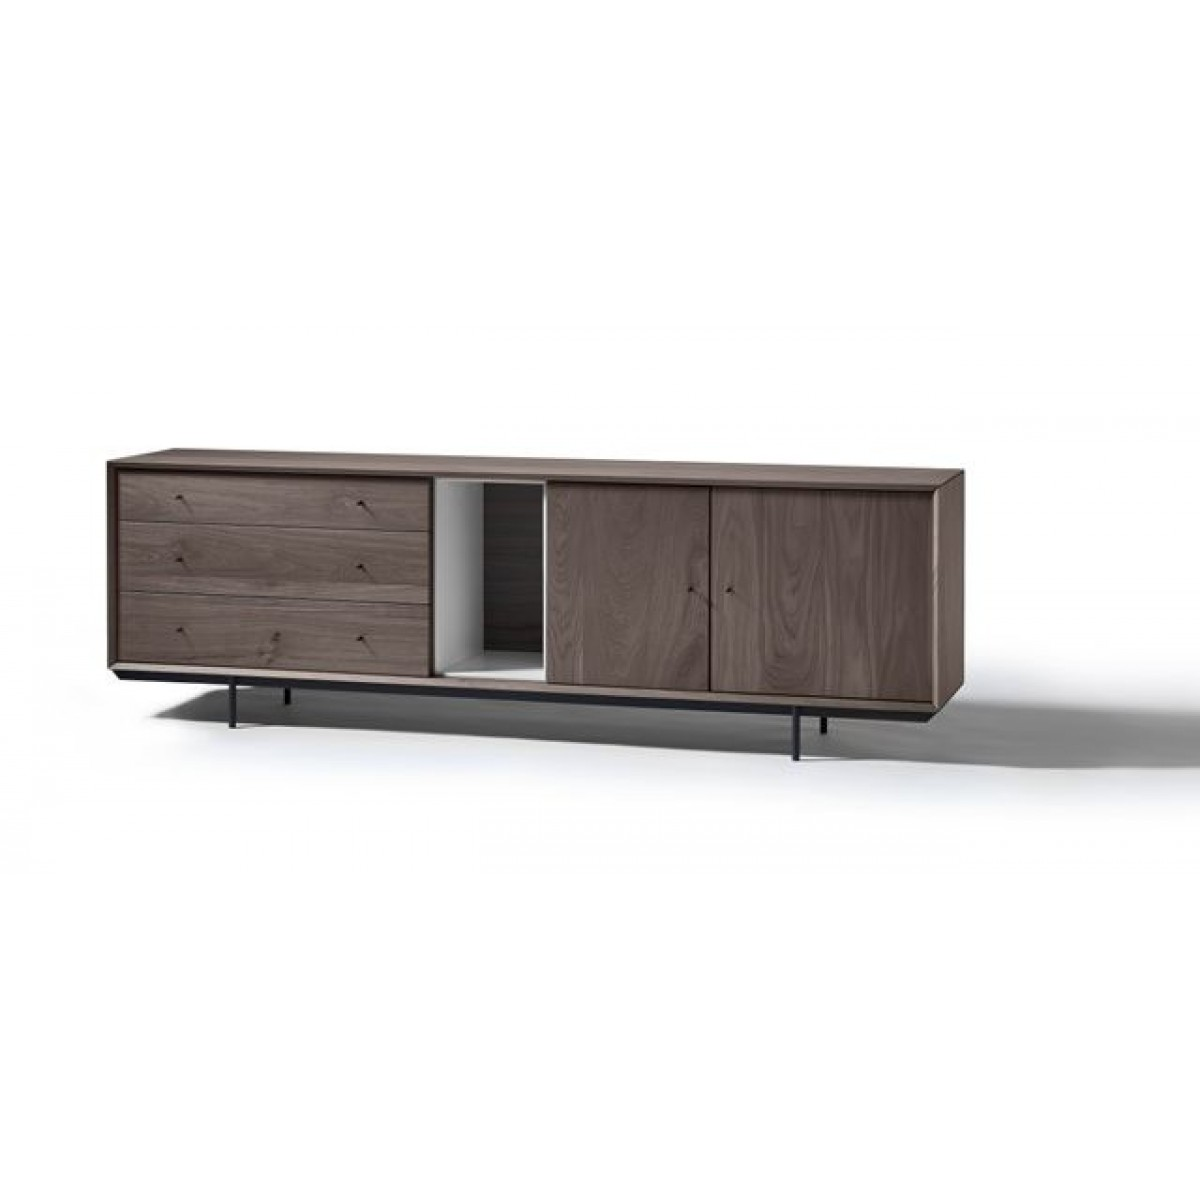 dressoir-cloud-clo-17-noten-probilex-miltonhouse